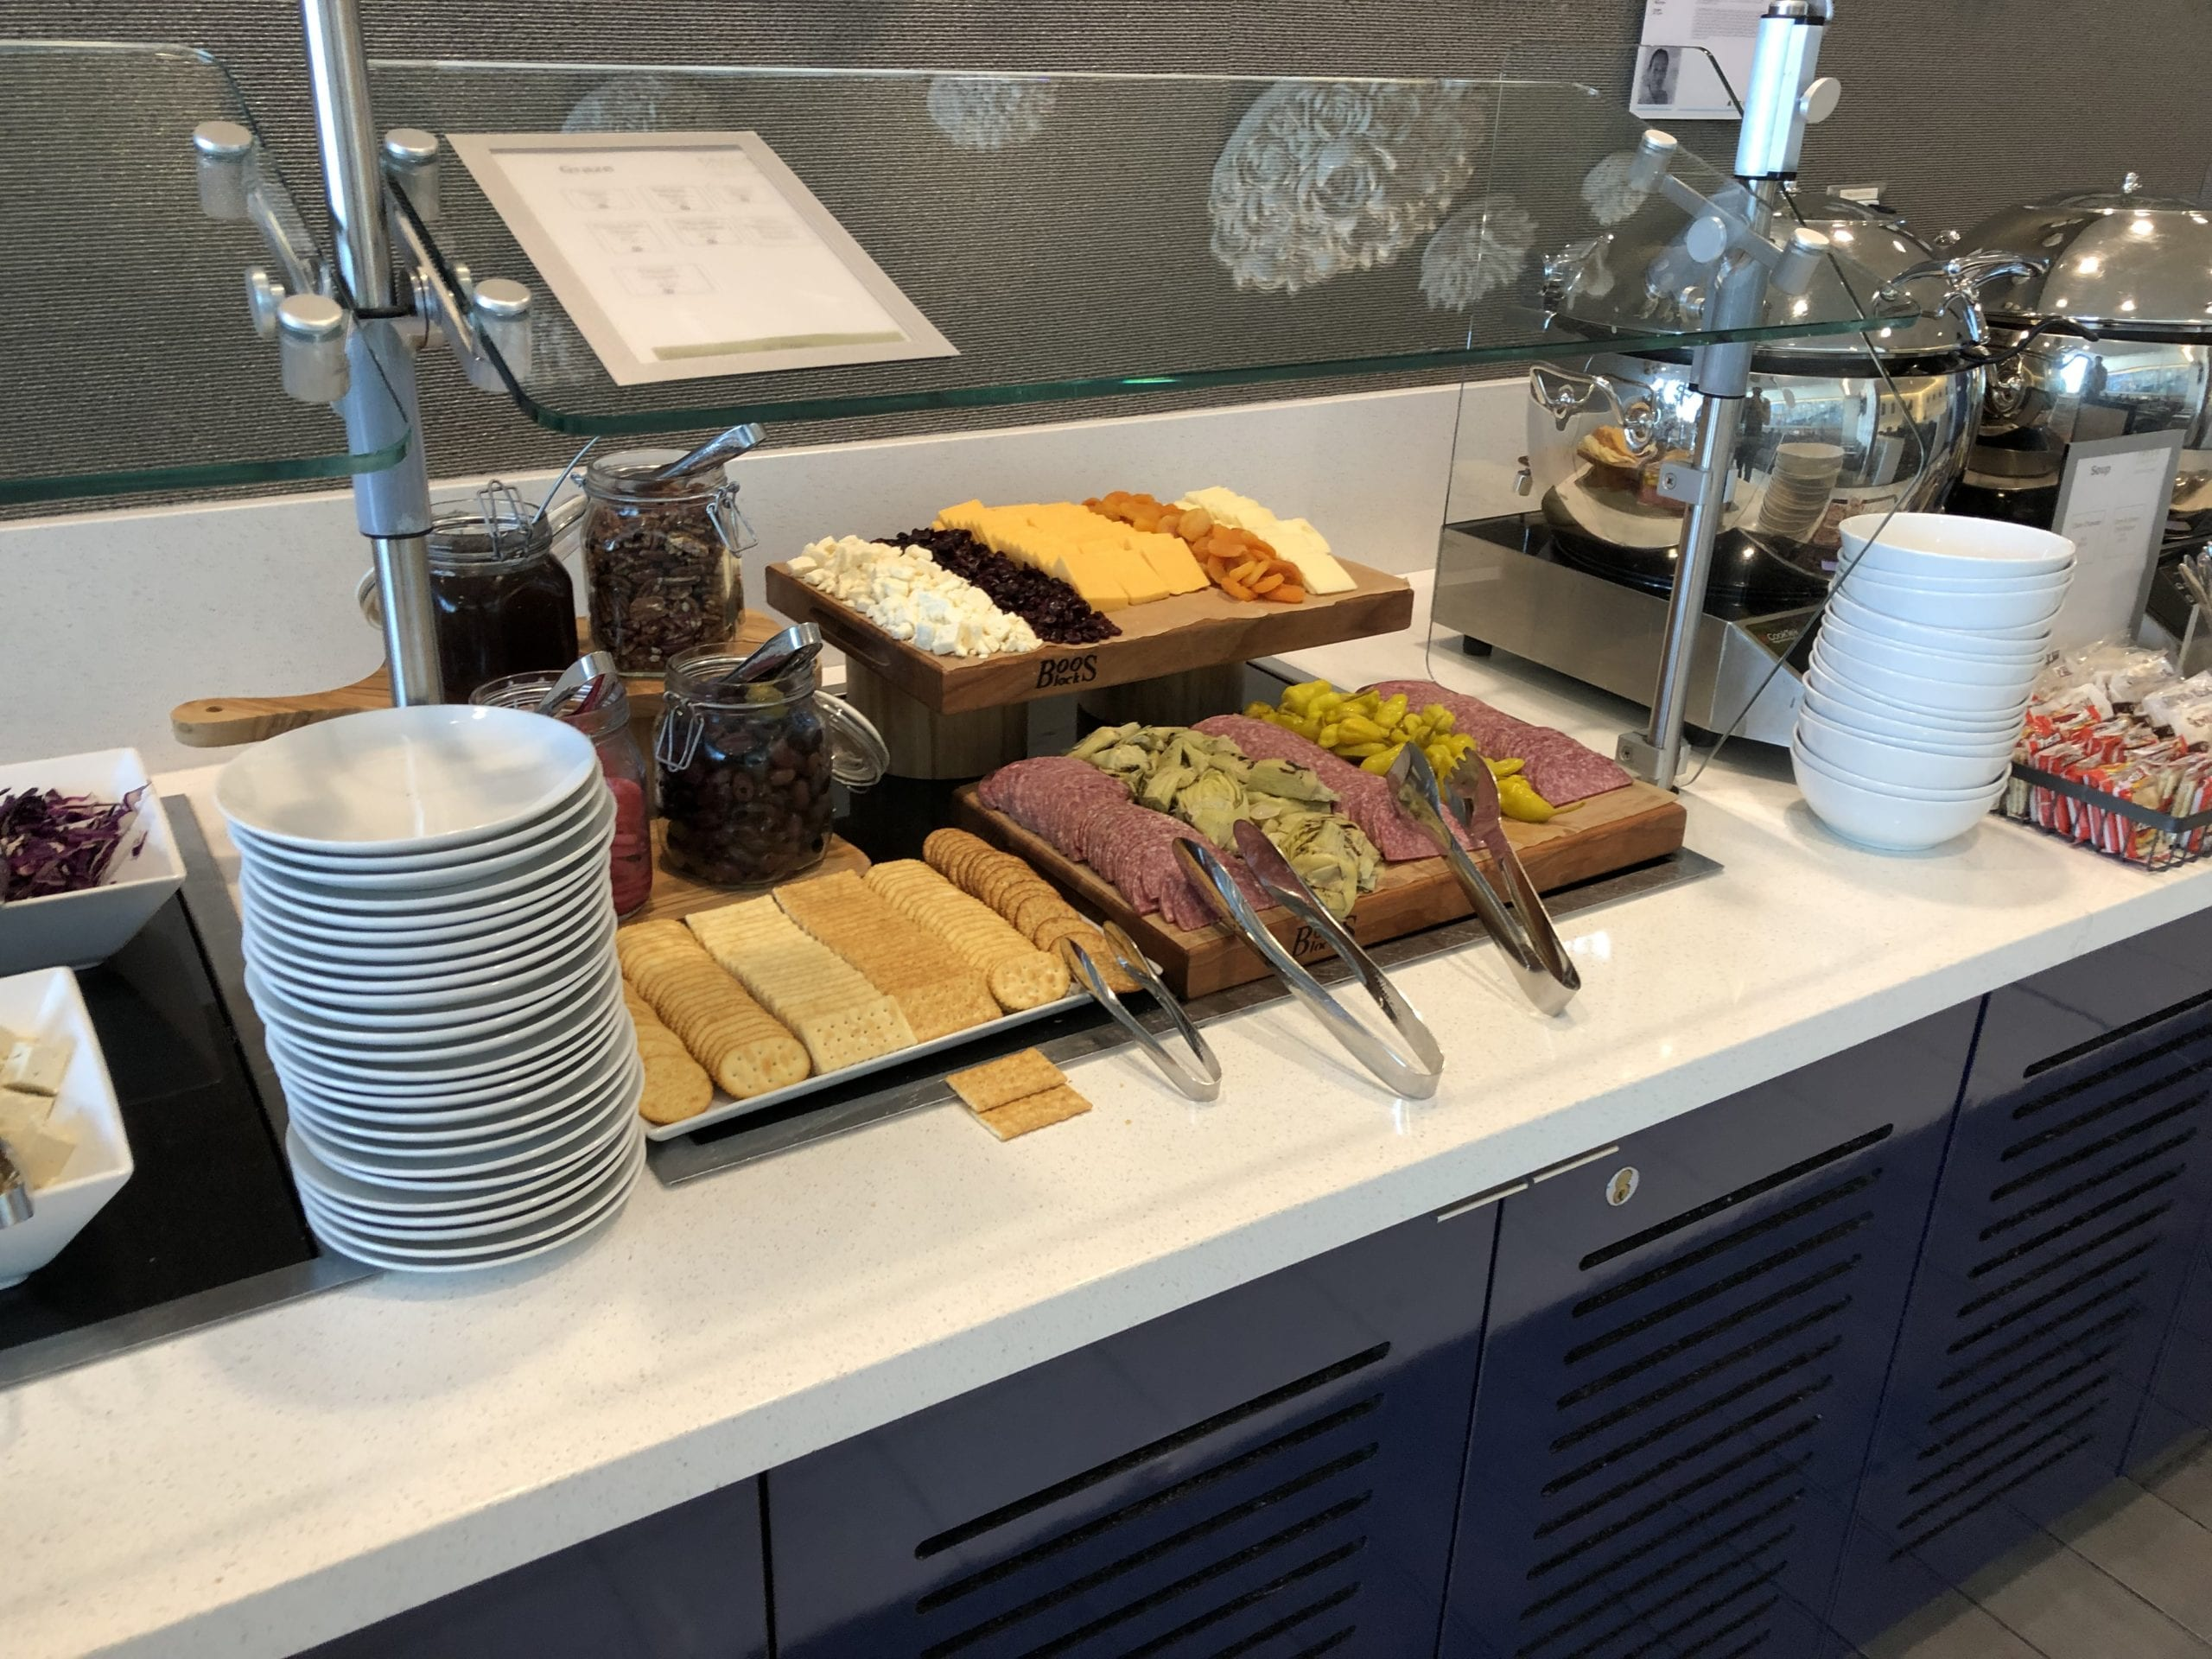 delta sky club san Francisco food